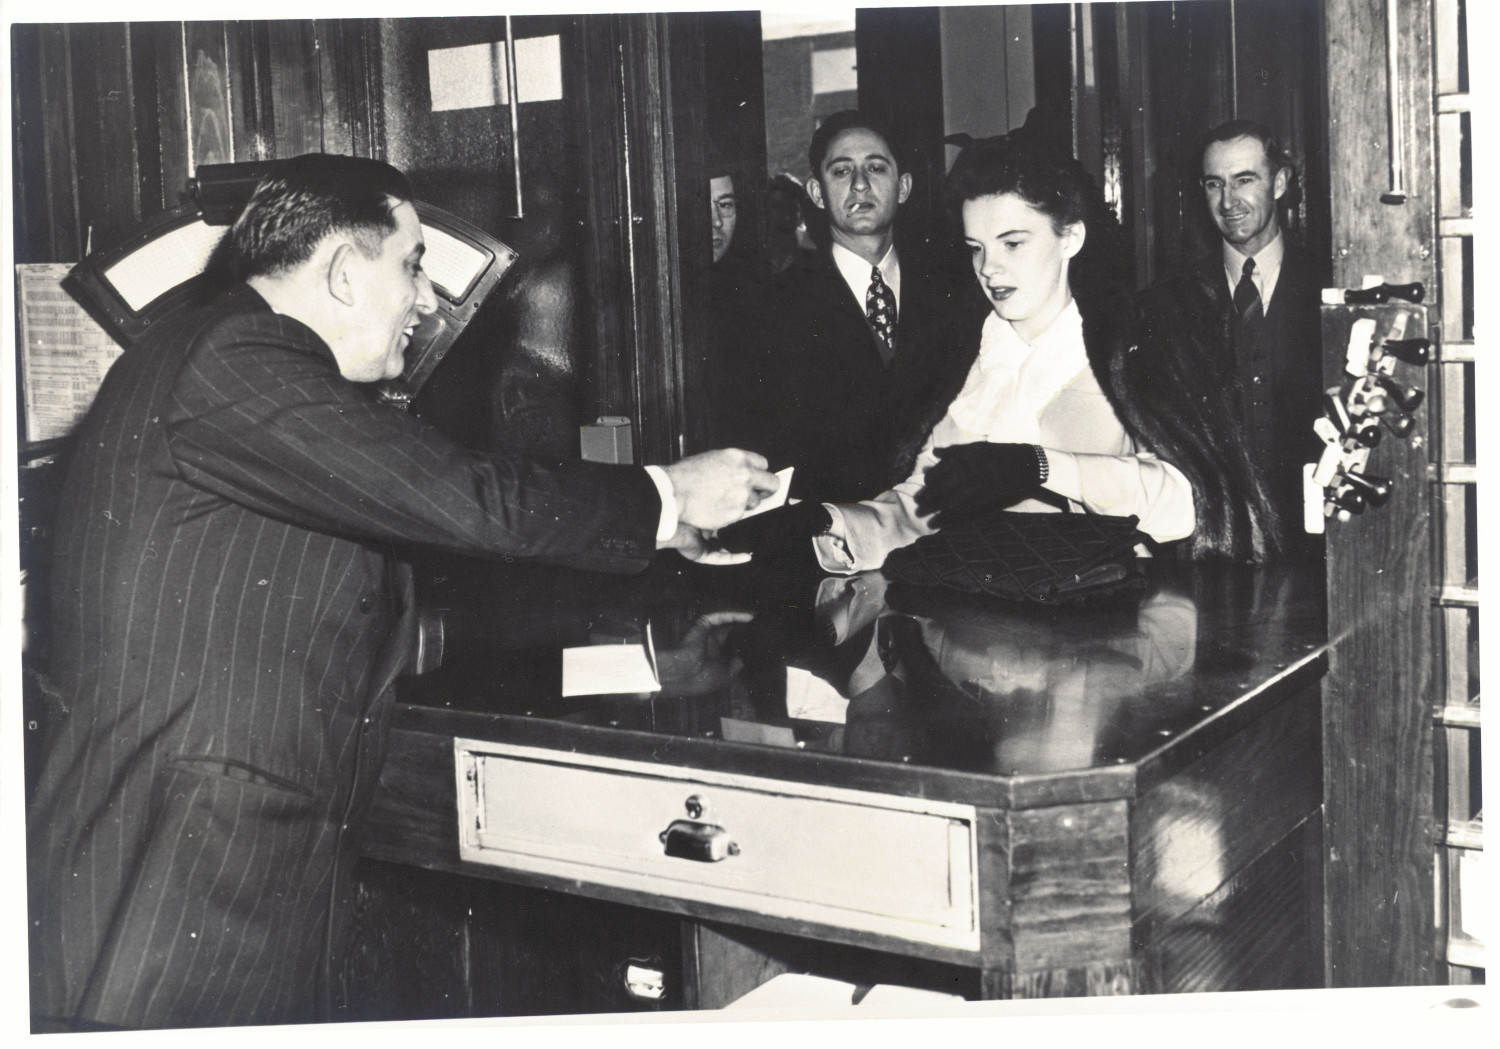 """[Judy Garland in Mineral Wells], This picture, found on page 161 of """"Time Was..."""" by A. F. Weaver, identifies the man selling a money order to Judy Garland in the Old Post Office (on NE 2nd Street) as D. C. Harris. The man on the right is identified as W. A. Ross. It has since [2102] been determined that the reason for Miss Garlands presence in the post Office was to lead a procession of children there in order to purchase Defense Stamps.,"""